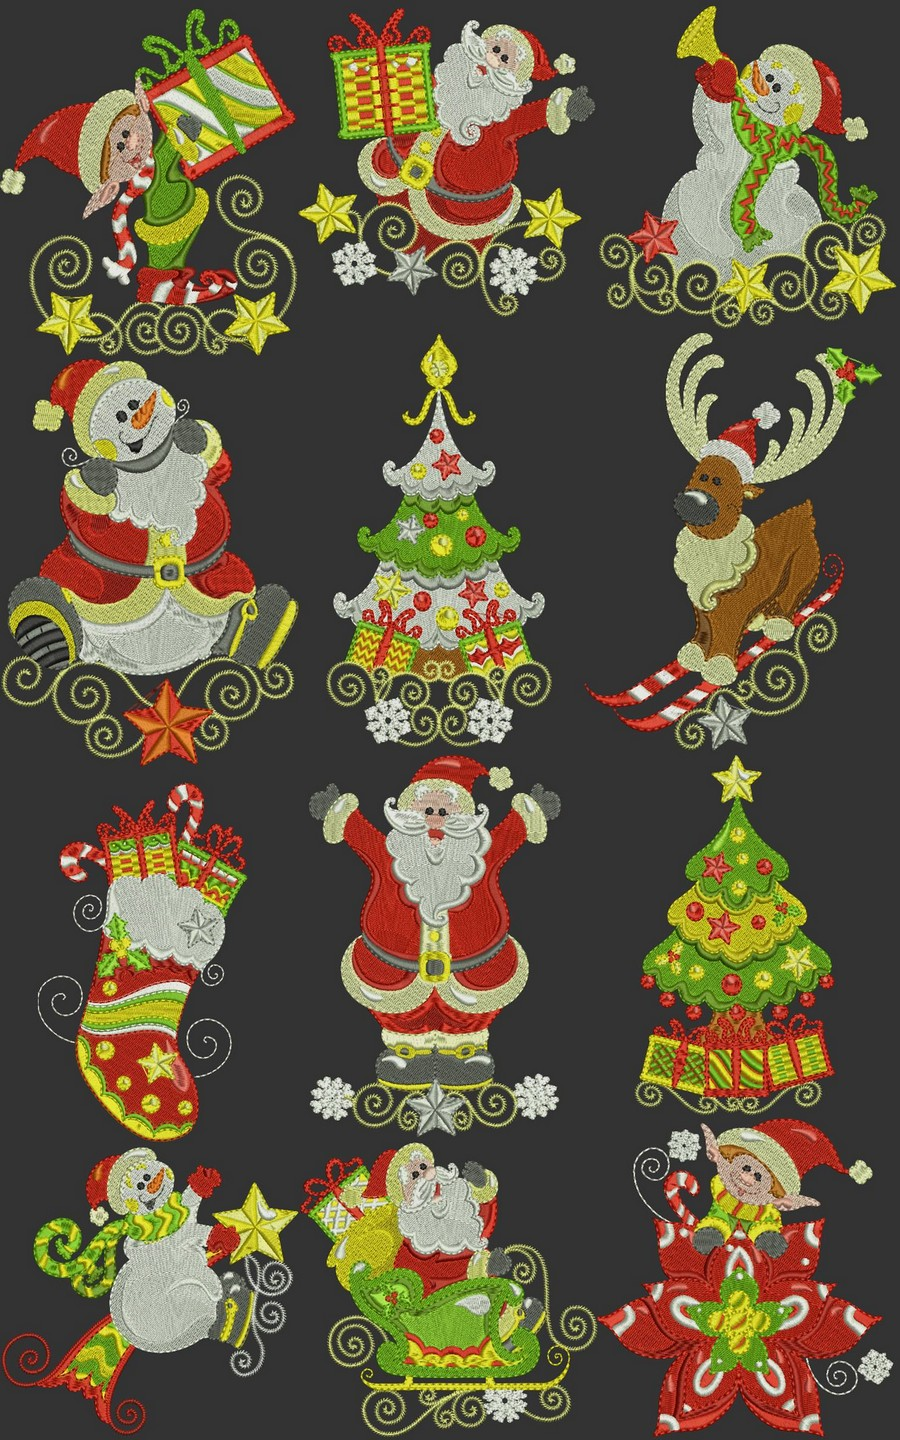 Swirly Curly Christmas Time Machine Embroidery Designs